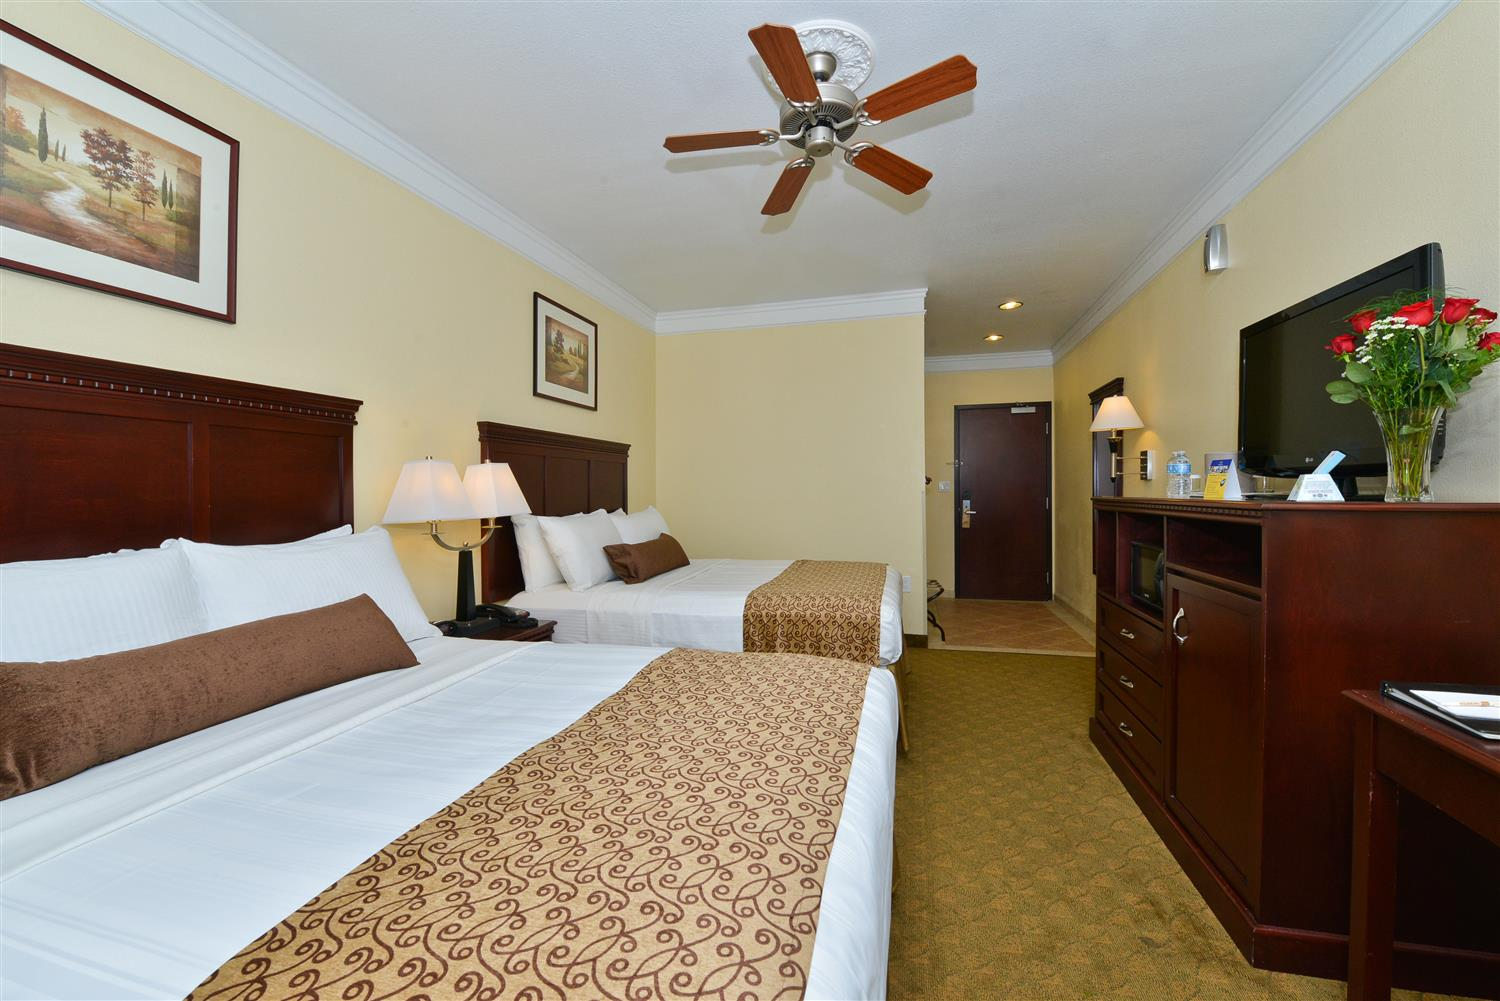 Having To Share A Room Come Stay In Our Two Queen Size Beds With The Front Desk Giving You Live Wake Up Call Morning